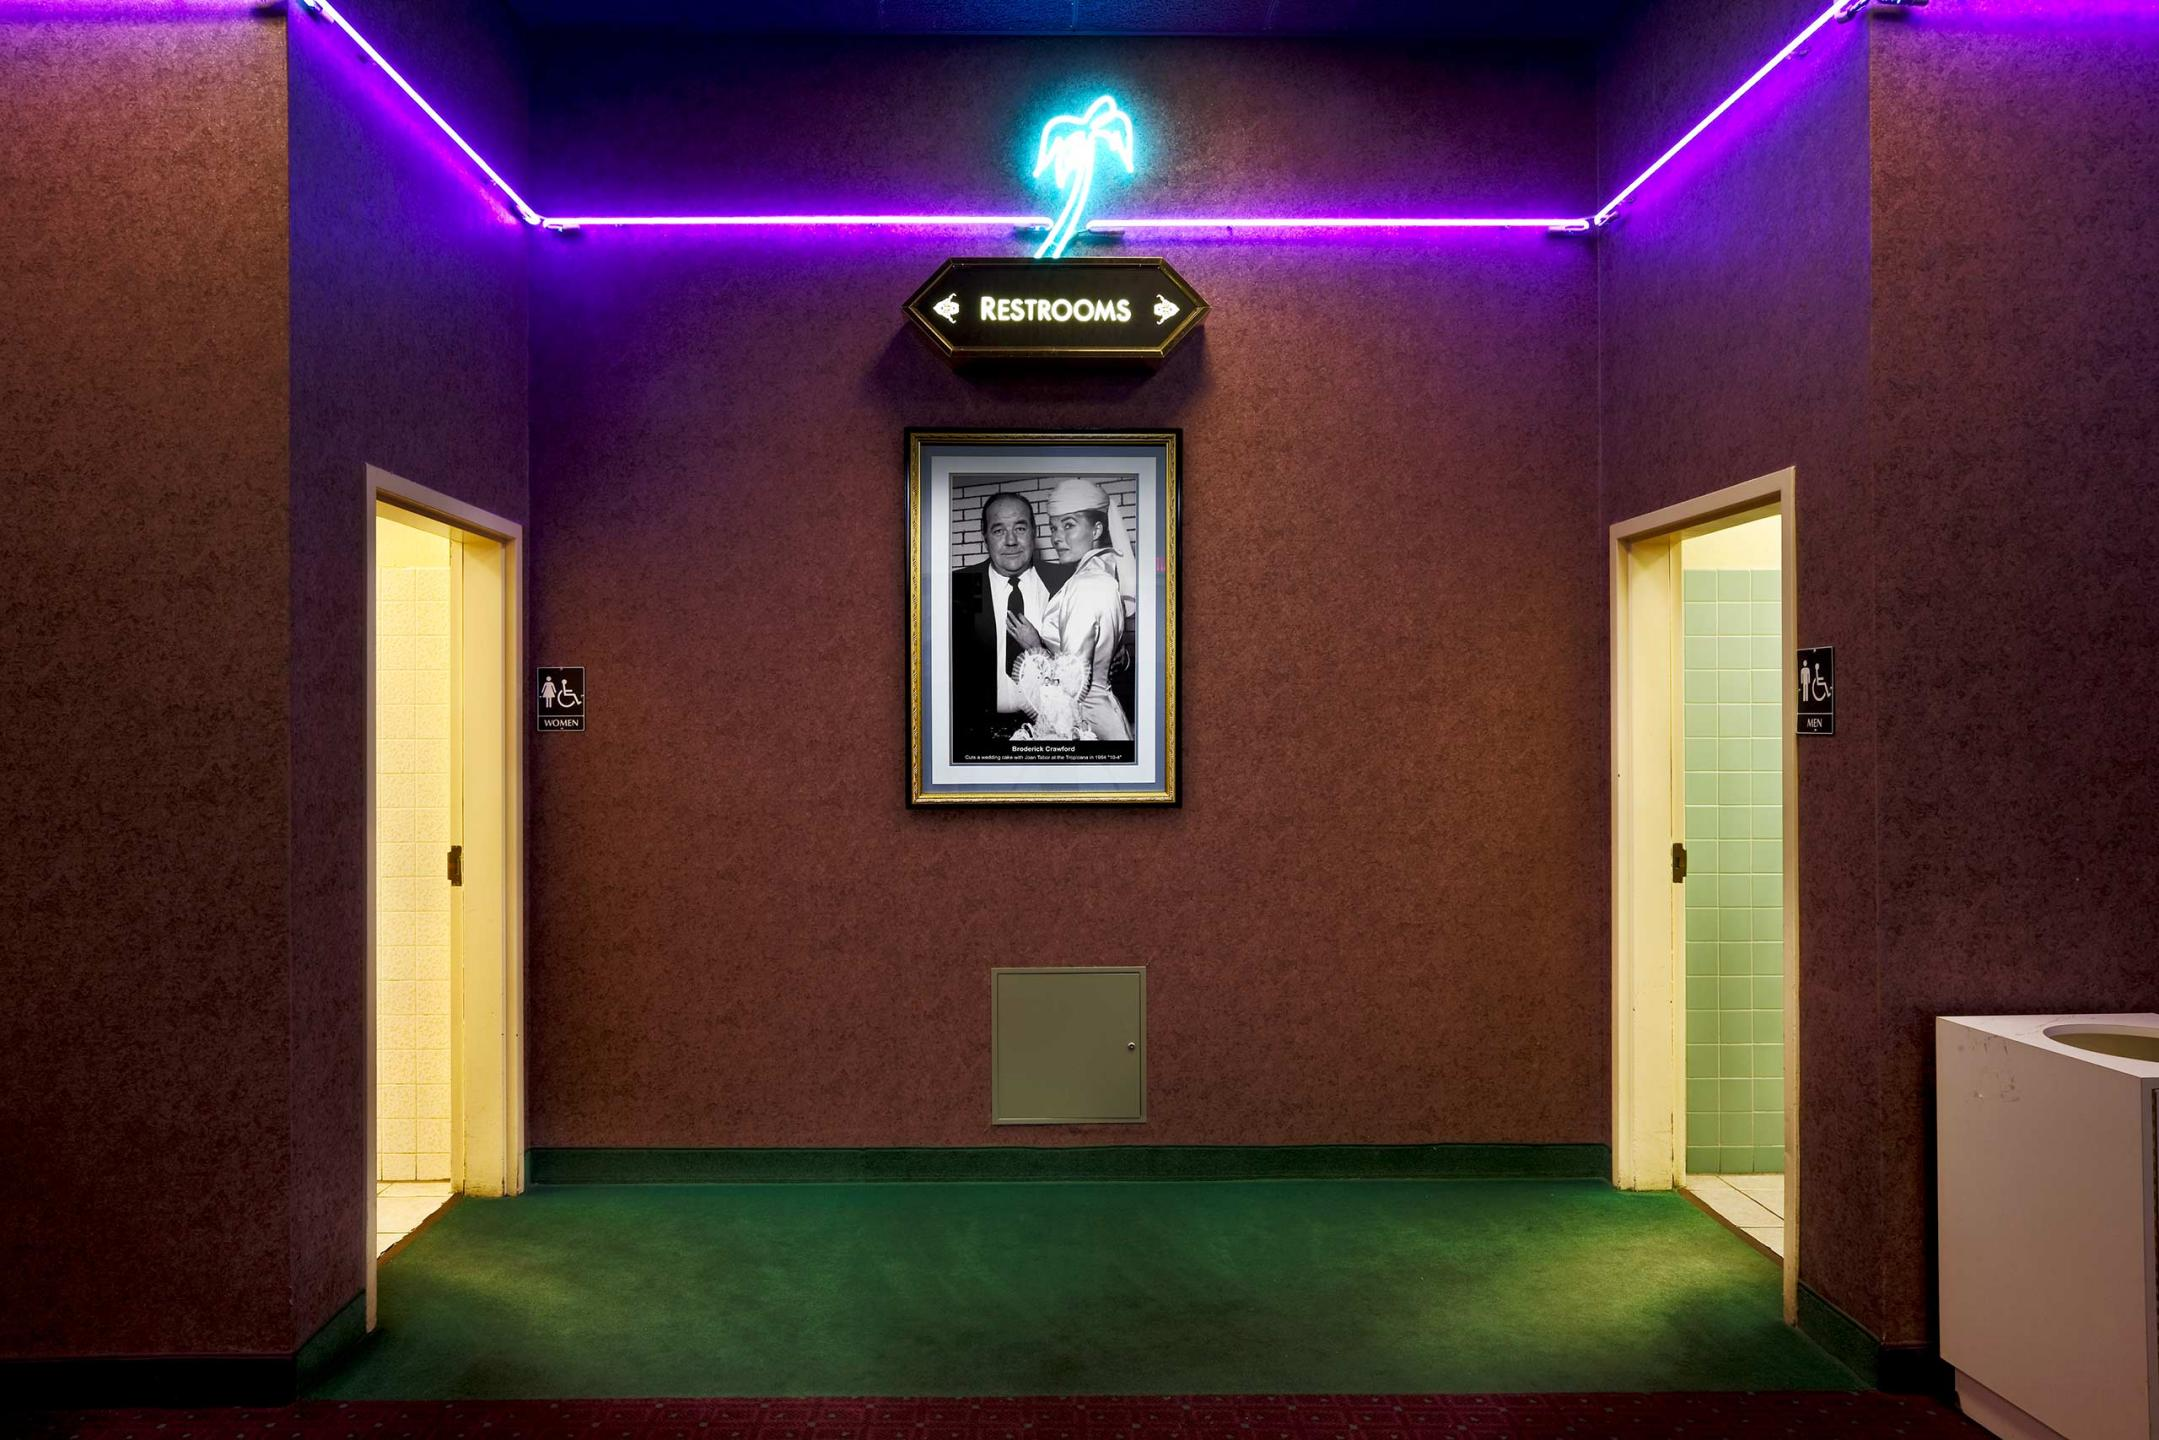 Las Vegas retro looking washroom  : Miscellanous Projects : New York NY Architectural Photographer | Interior and Exterior